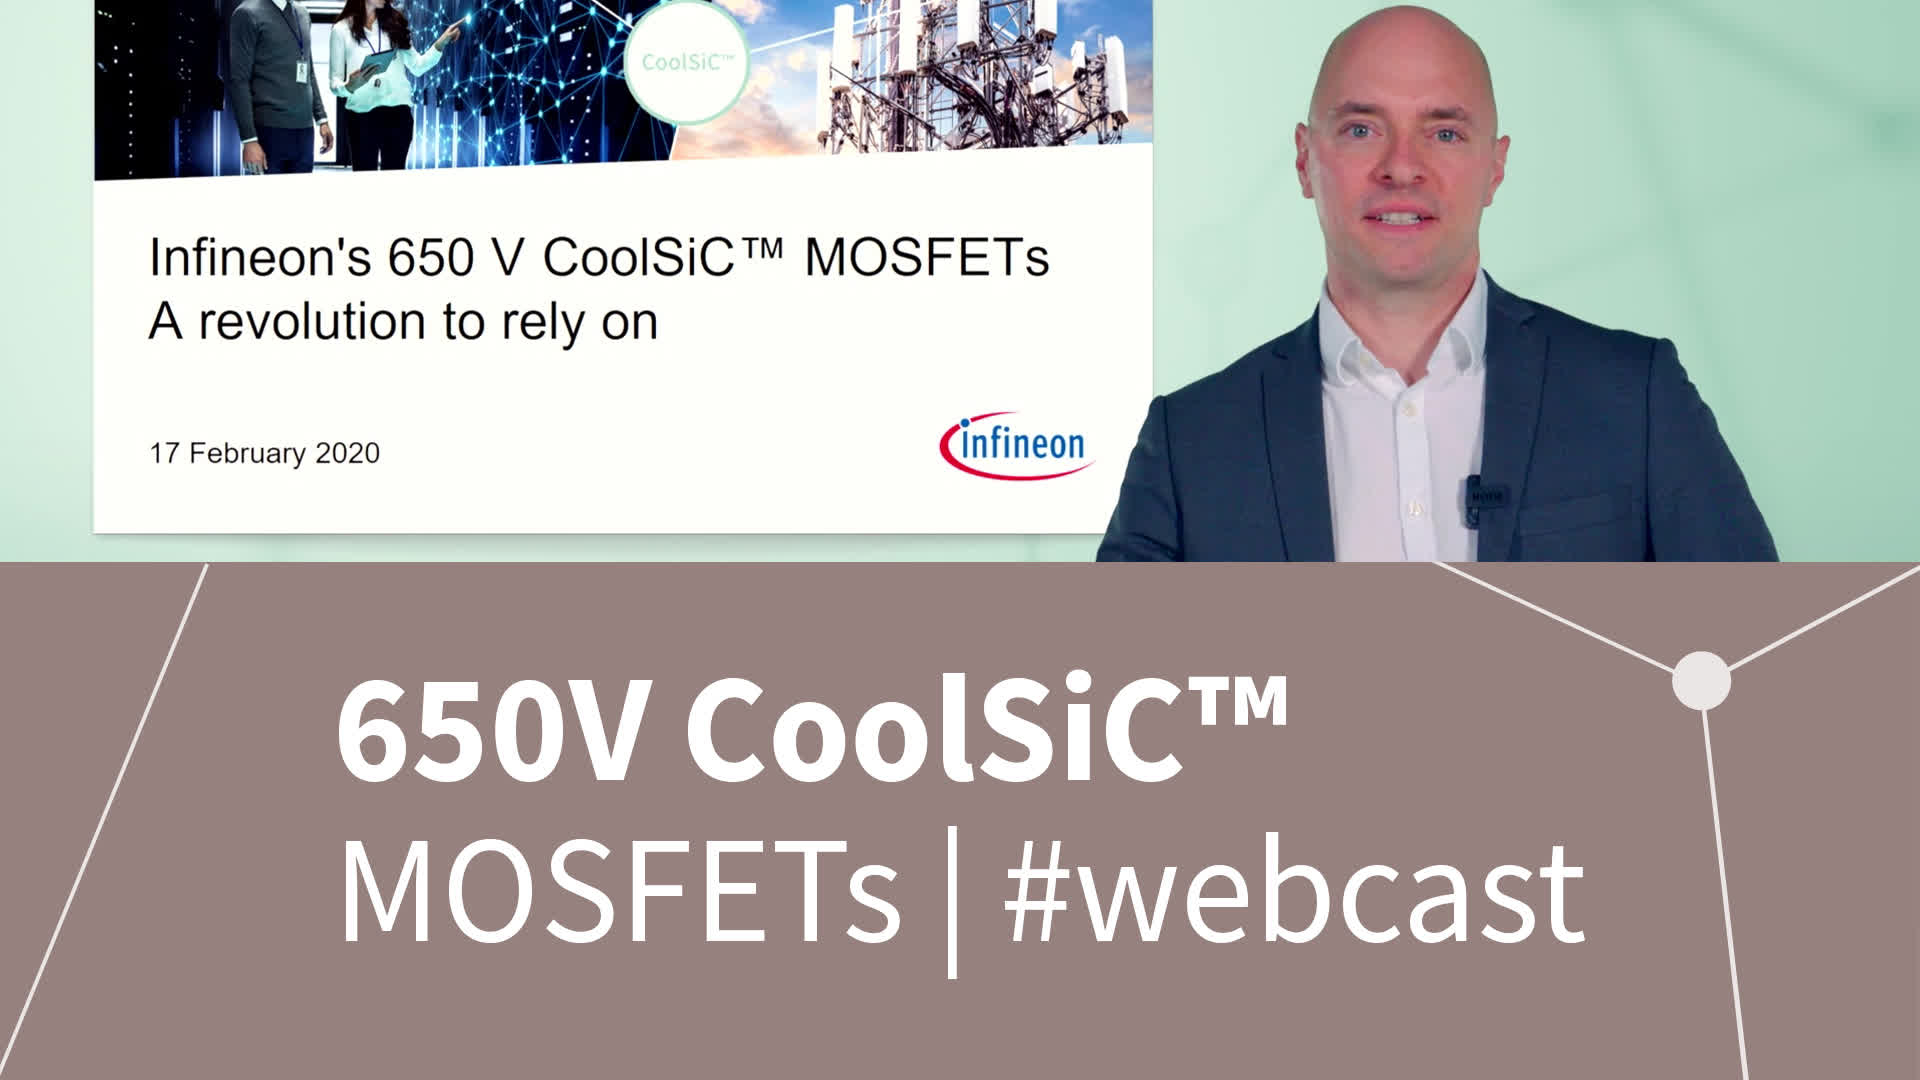 650 V CoolSiC™ MOSFETs